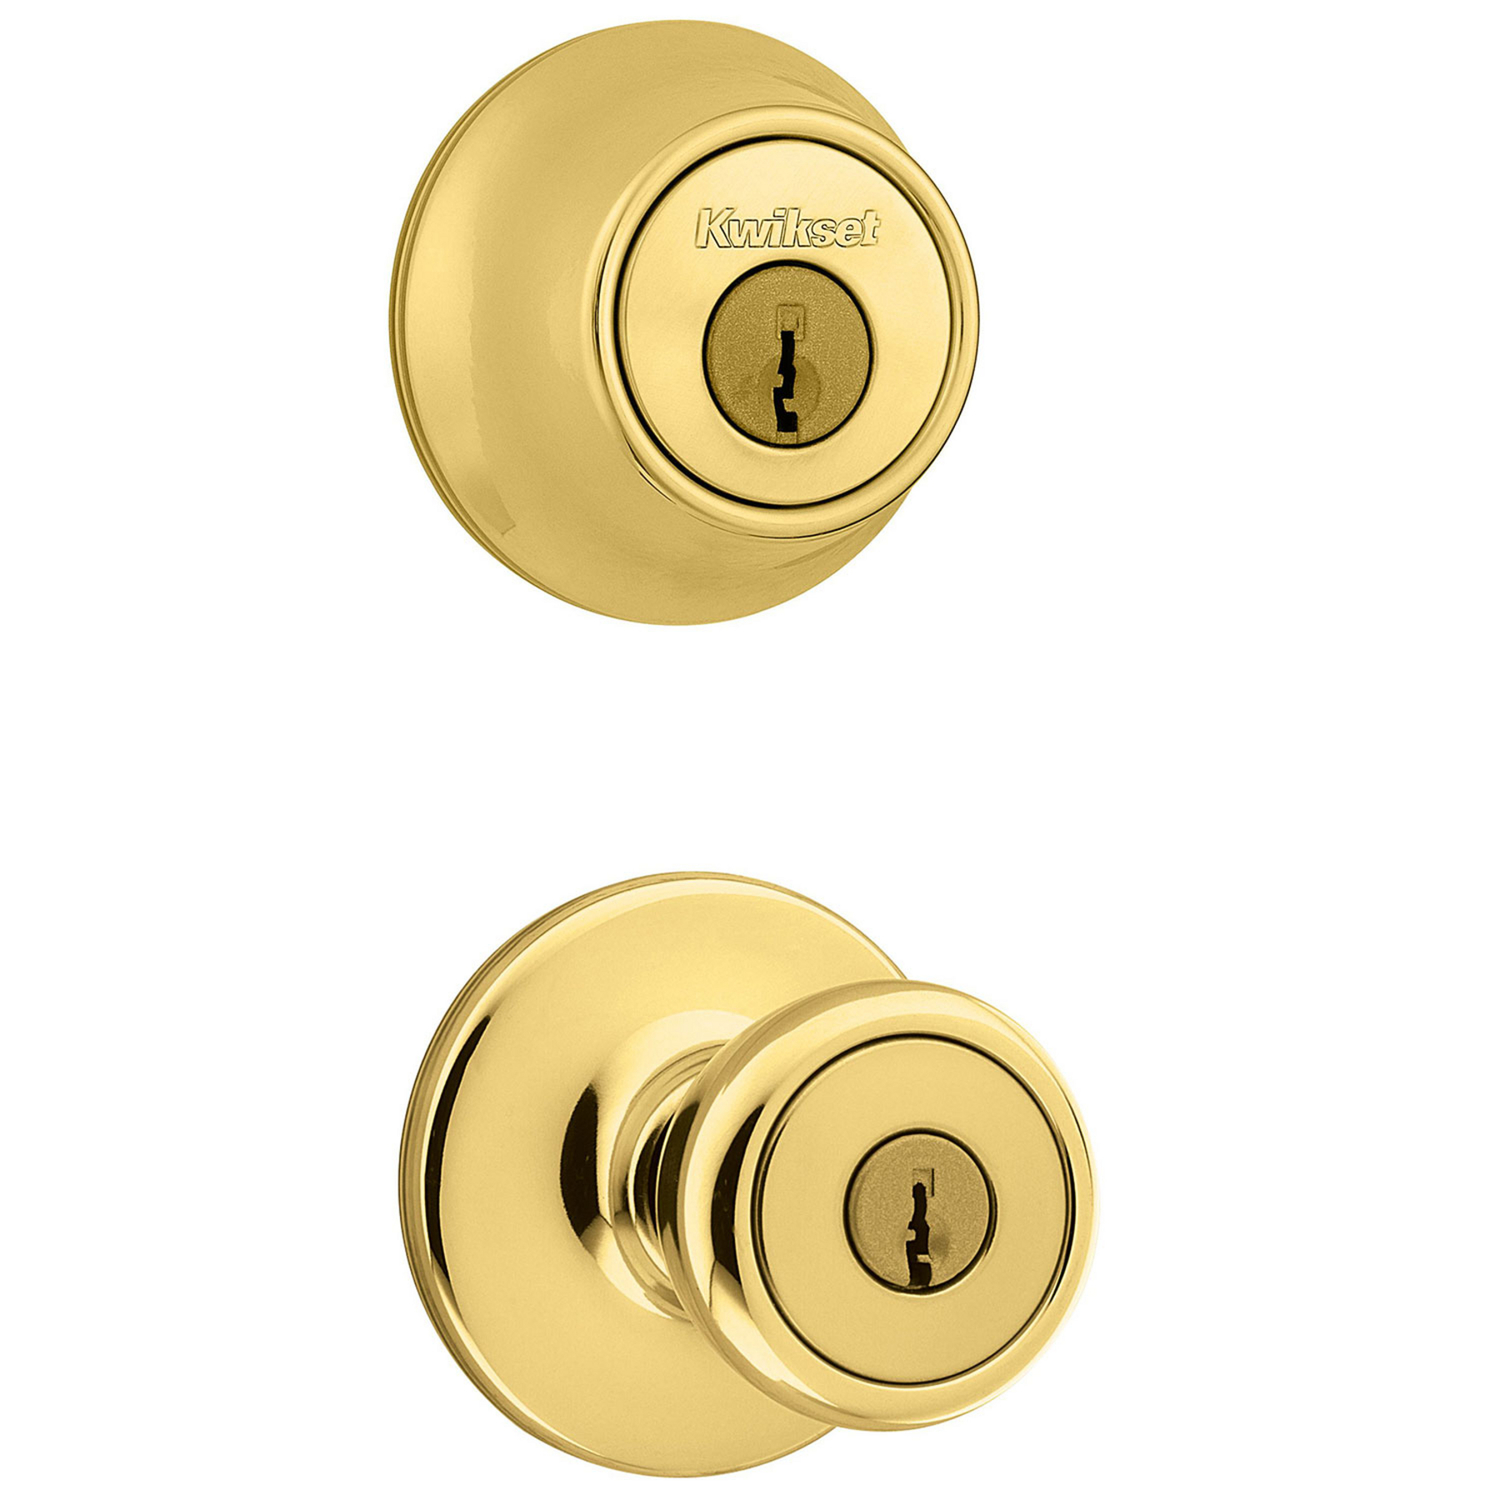 Kwikset  Tylo  Polished Brass  Steel  Entry Lock and Single Cylinder Deadbolt  ANSI/BHMA Grade 3  1-